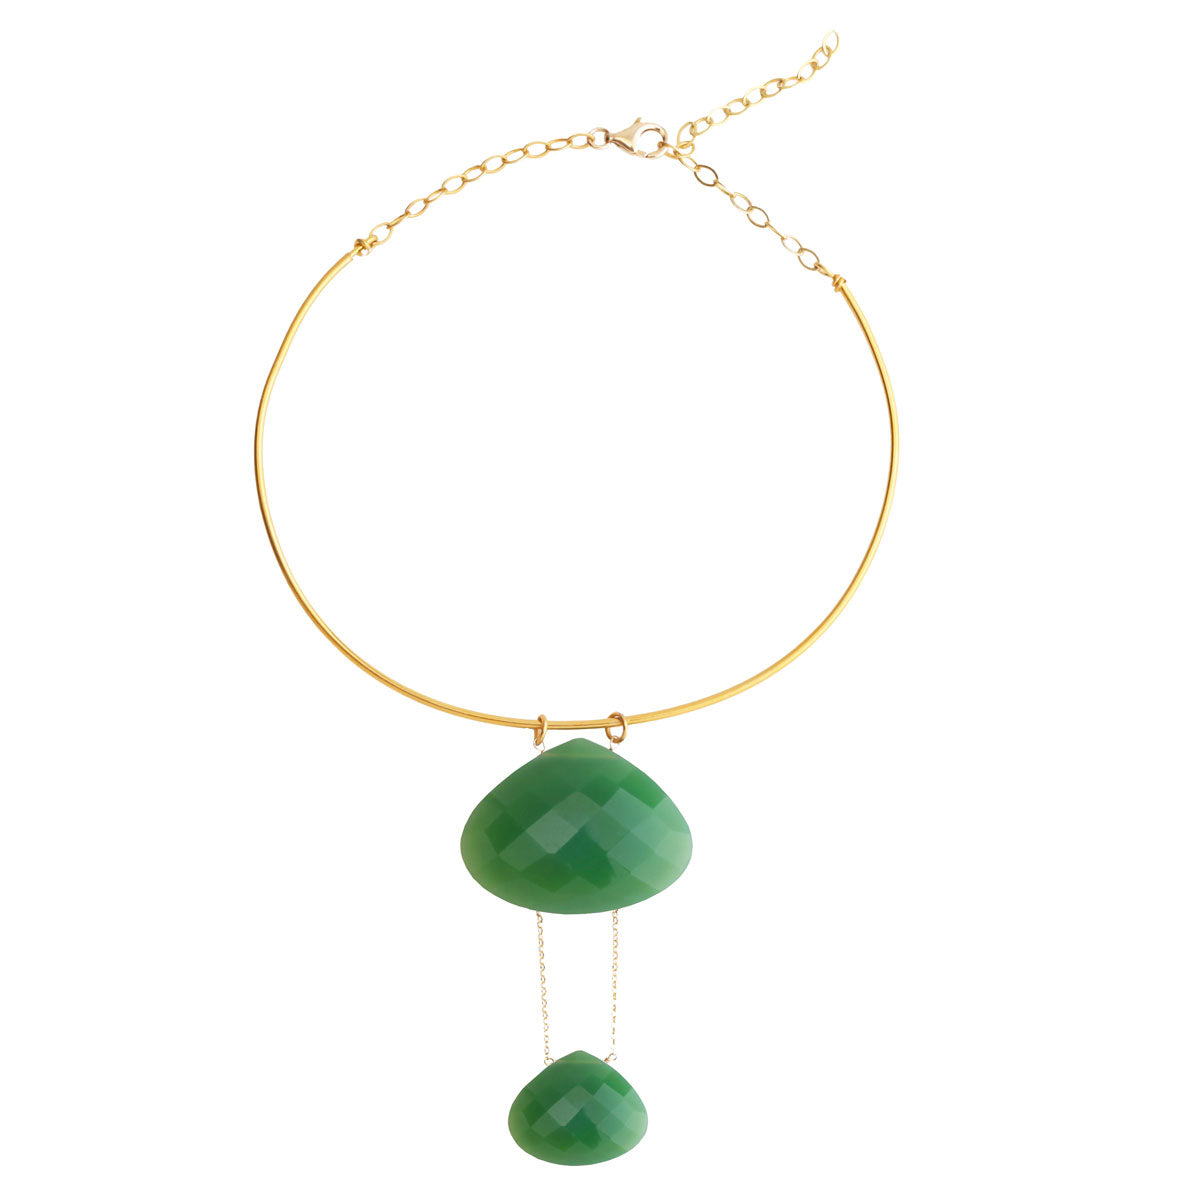 kent ada white selin adanecklace products with necklace on trillion chrysoprase diamond model